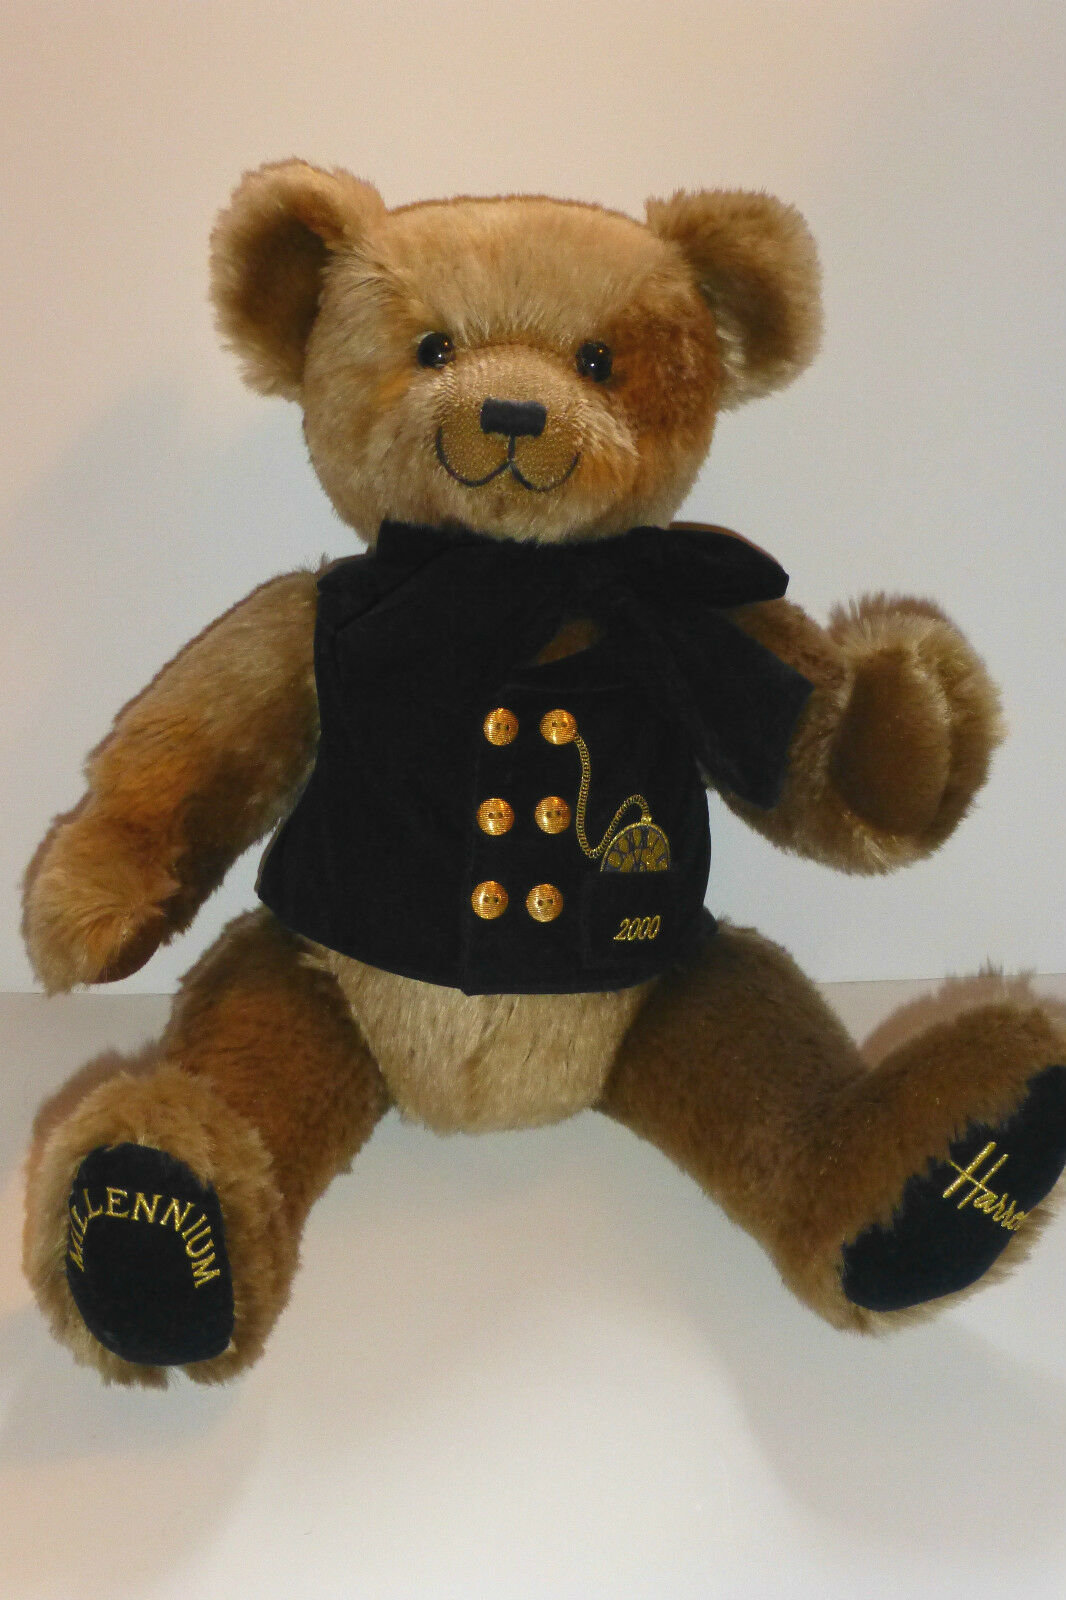 HARROD'S 2000 MILLENIUM 17  TEDDY BEAR. PRISTINE CONDITION.One,Original Owner